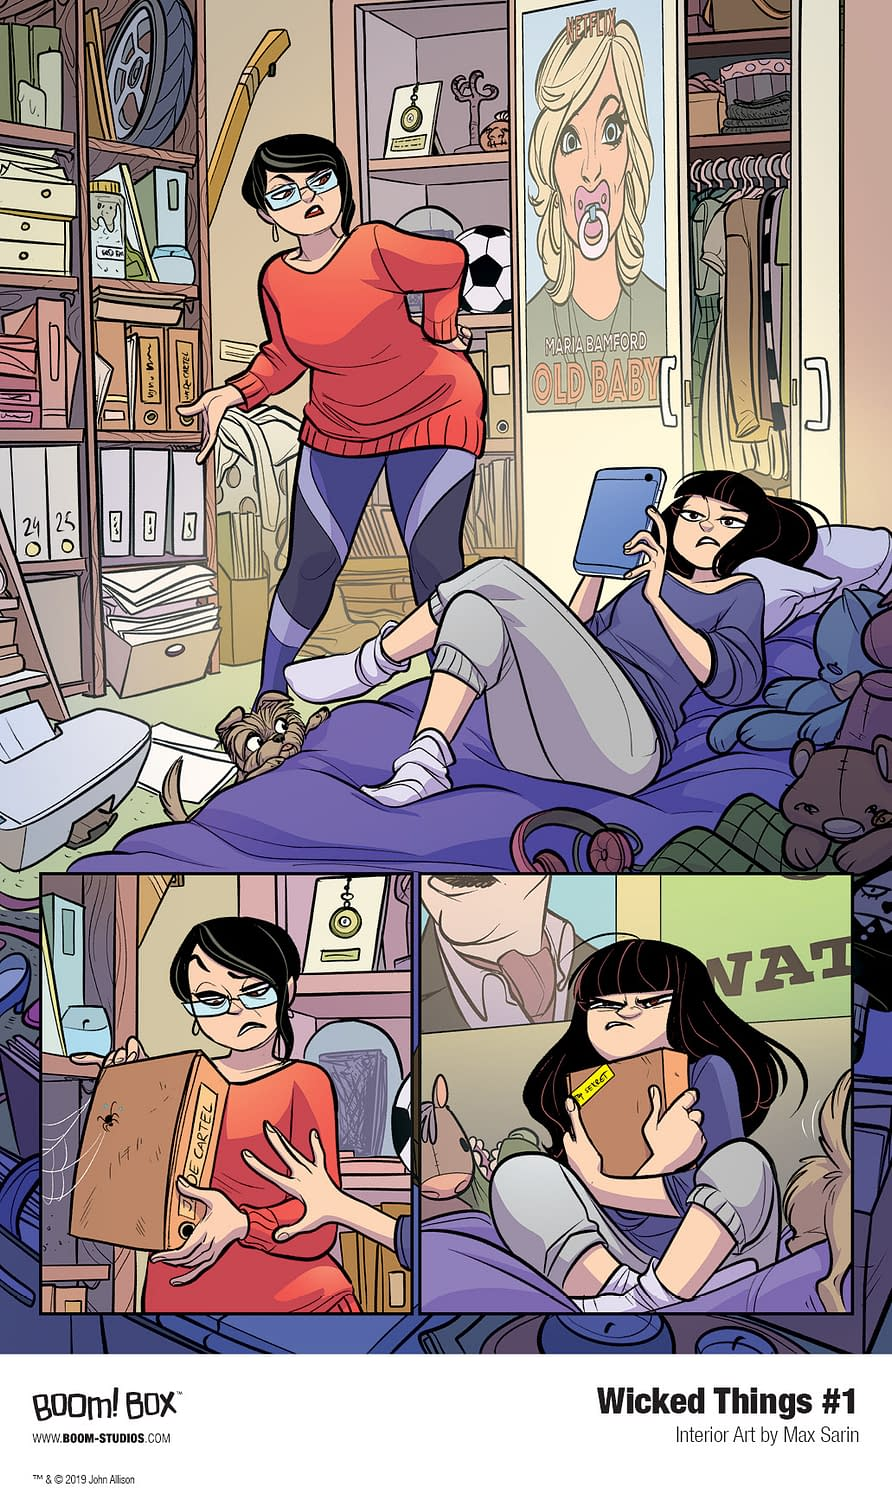 Giant Days Team Returns with Spinoff Series at BOOM! in March